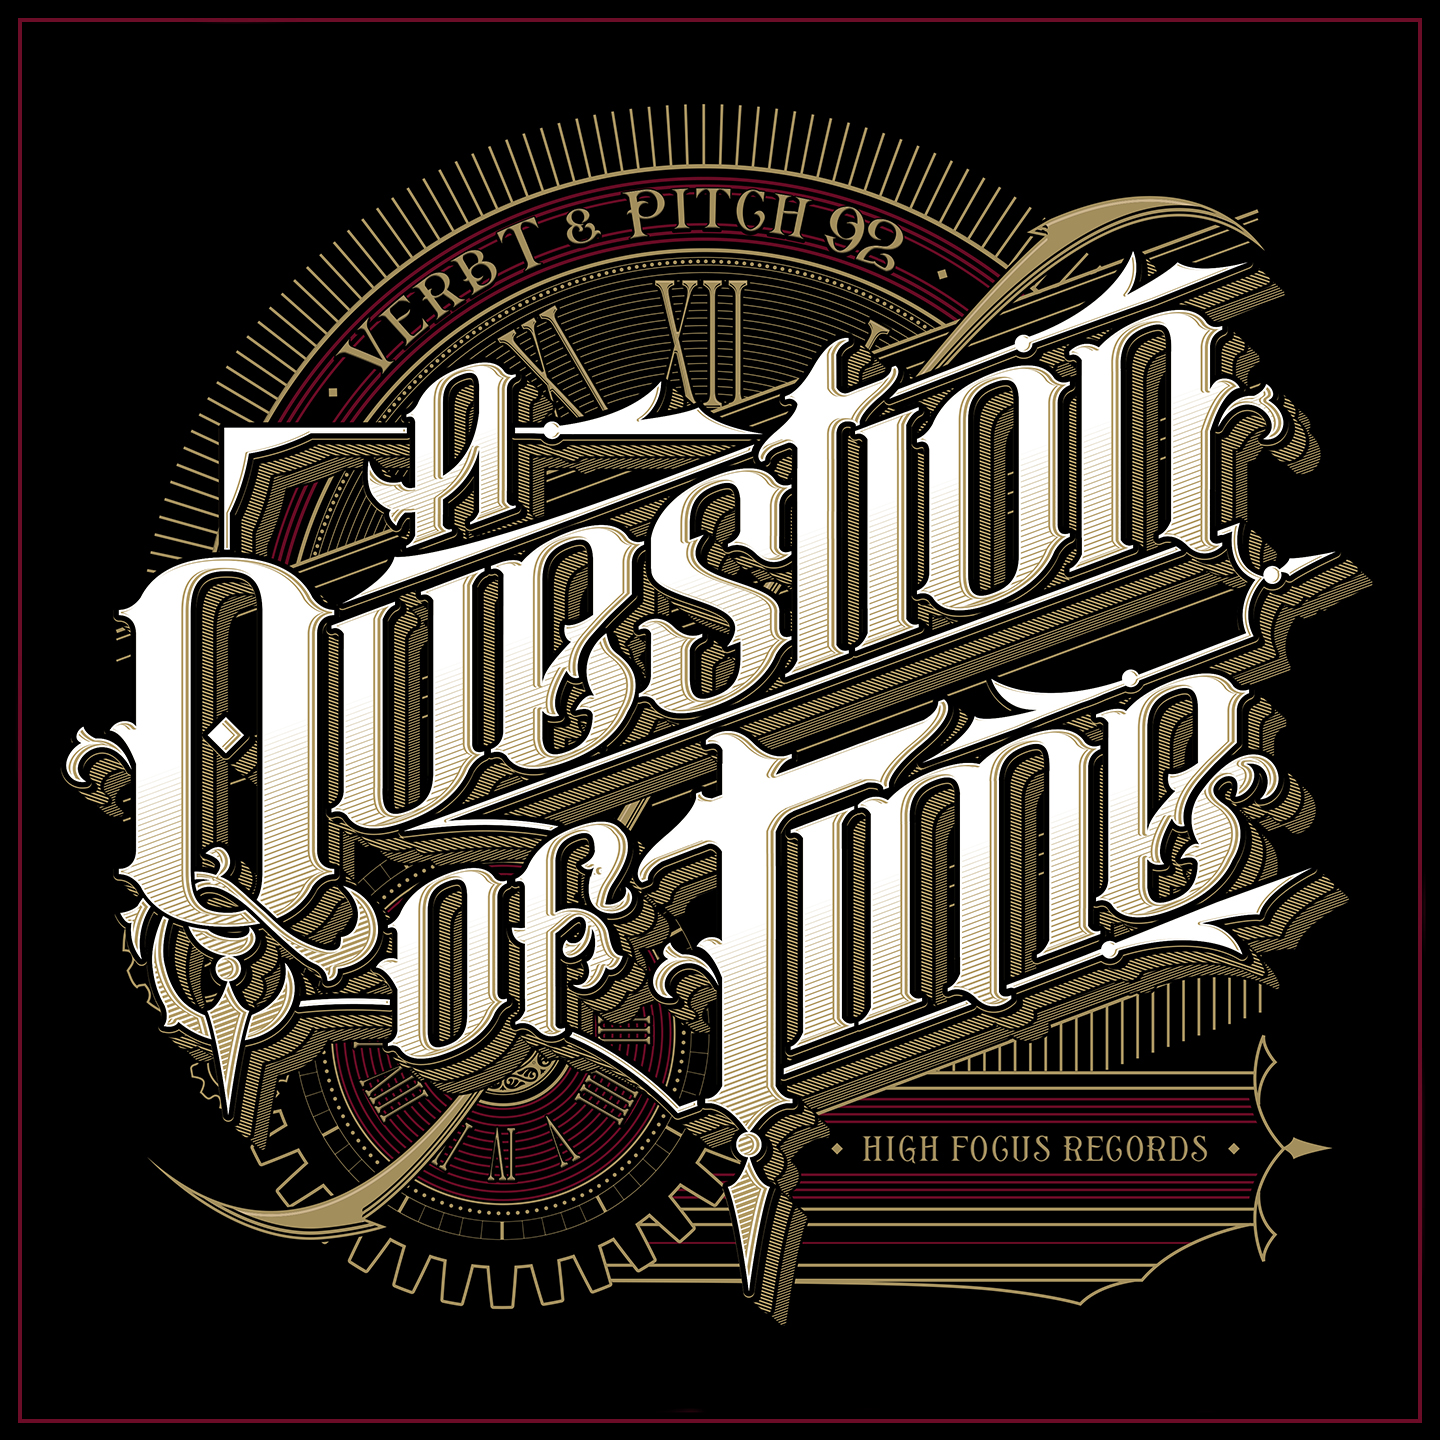 Verb T & Pitch 92 - A Question of Time   8. A Question of Time    Flute Seb Zillner   © 2019 High Focus Records  Listen on Spotify